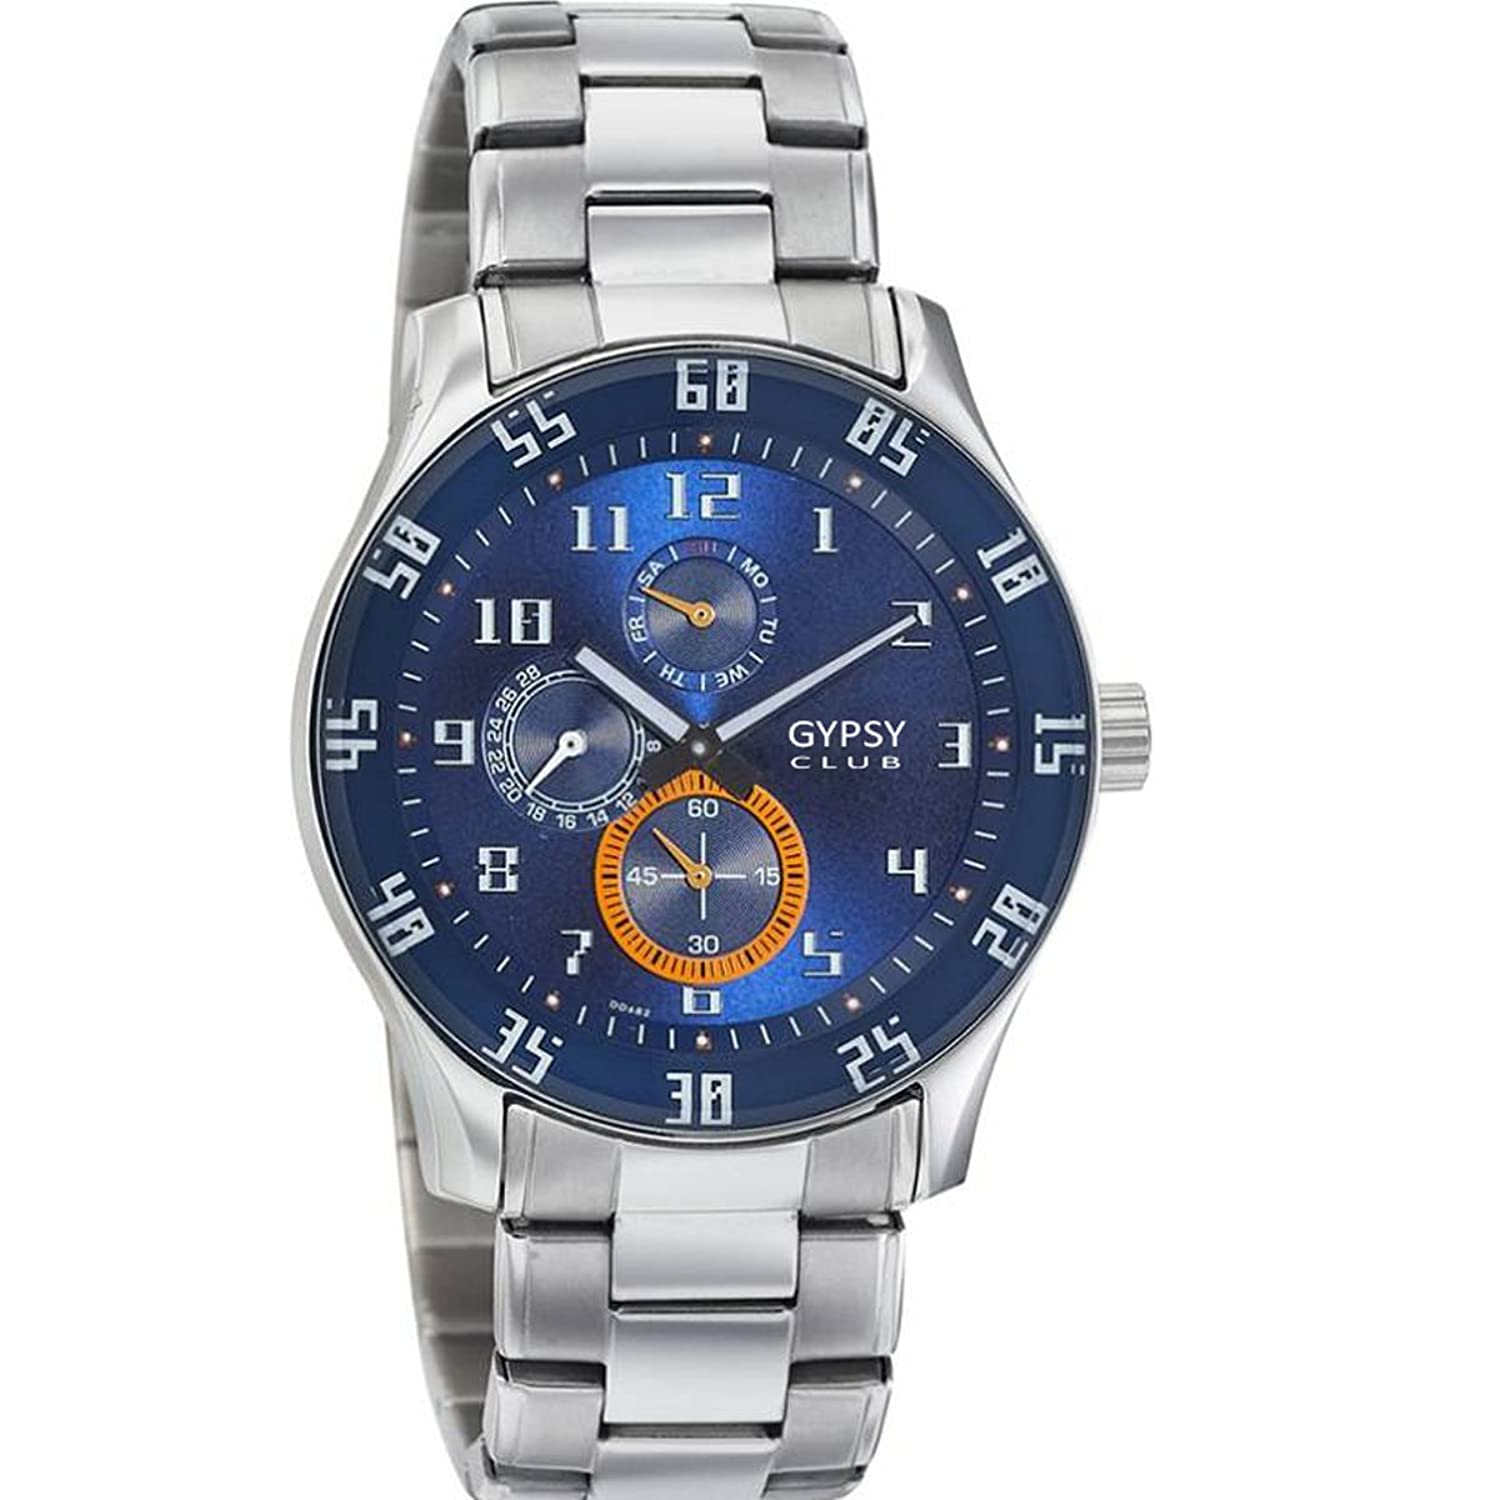 india gypsy dial watch watches analog at dp club aqua prices low blue men in buy amazon online boy s